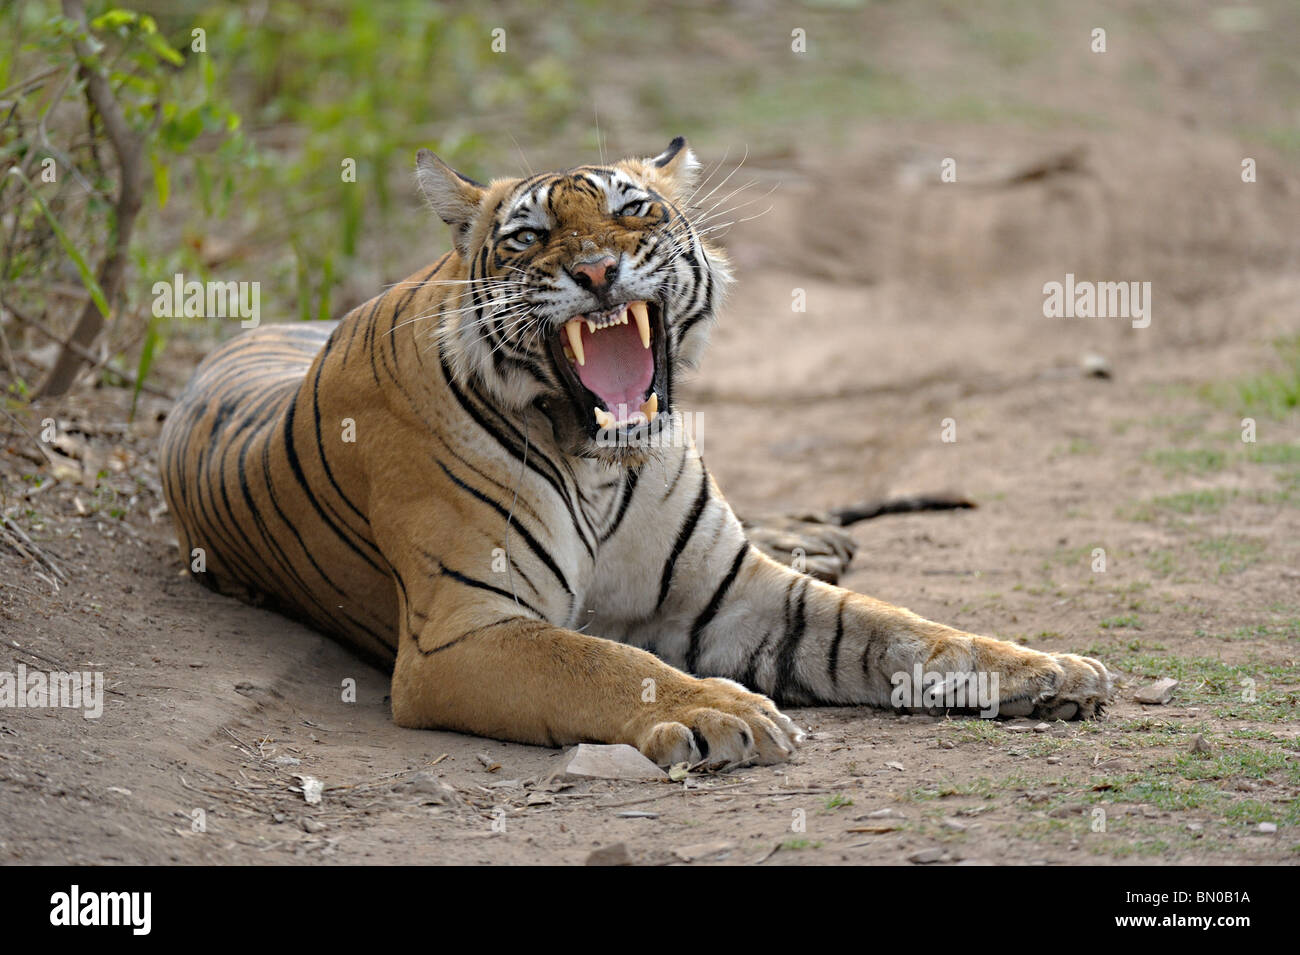 Wild Tigers radio collared in Ranthambore national park in India, for scientific research - Stock Image